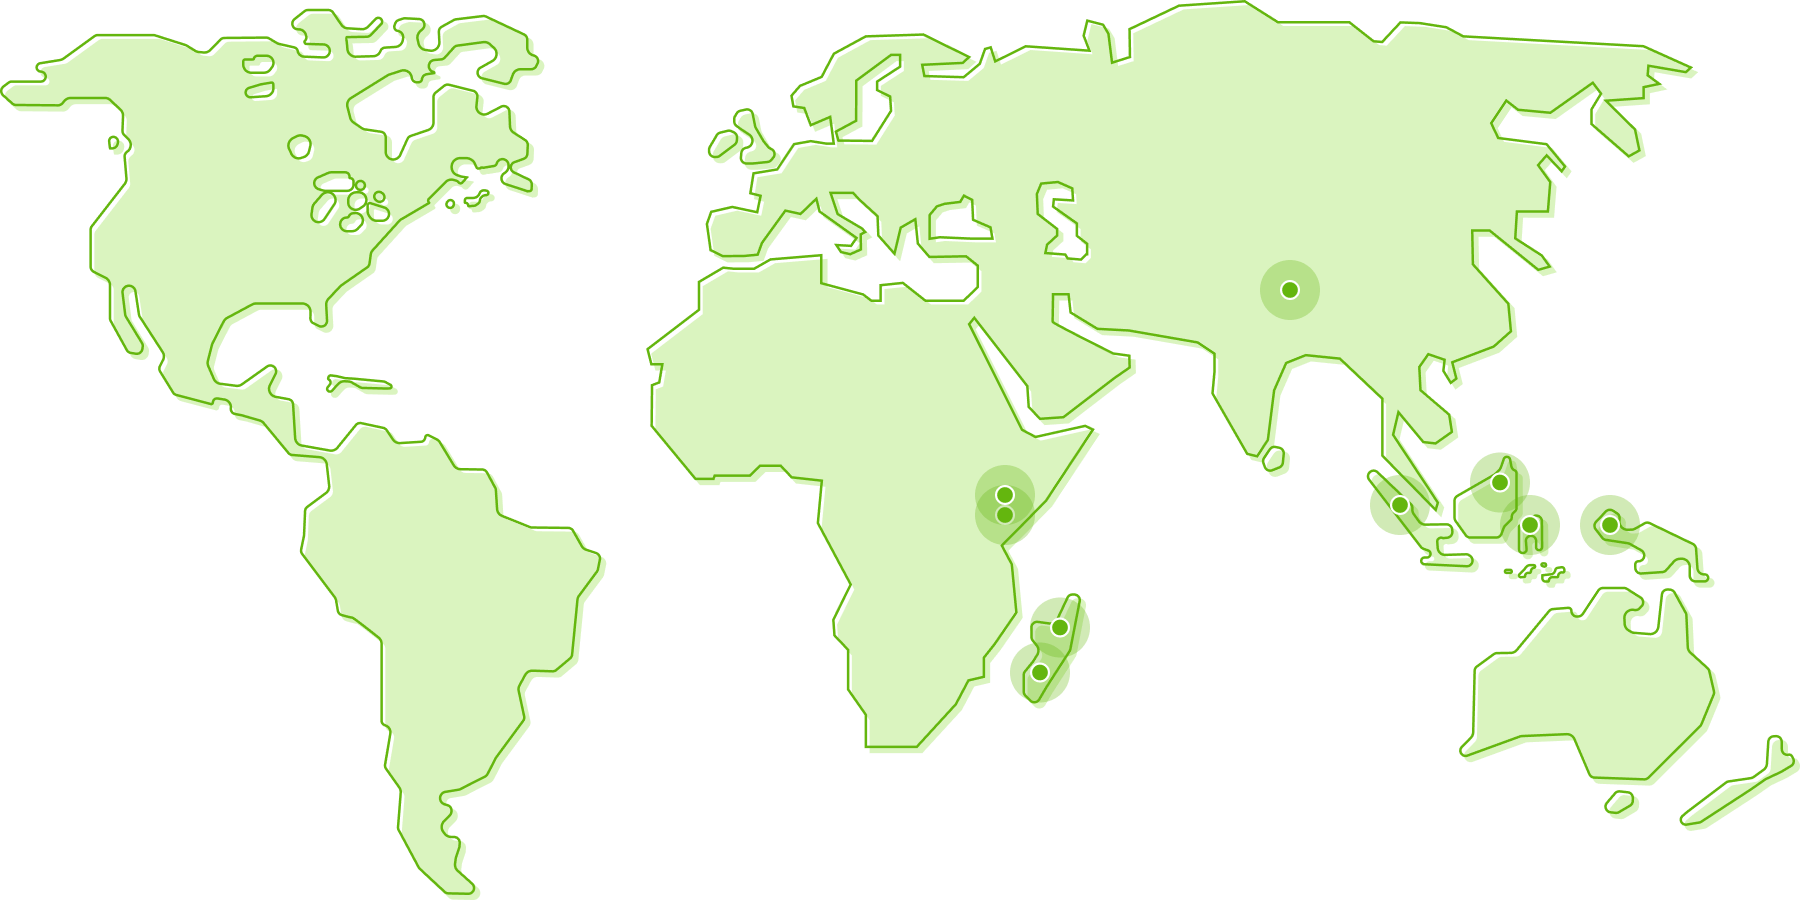 A map of the world where we plant trees.